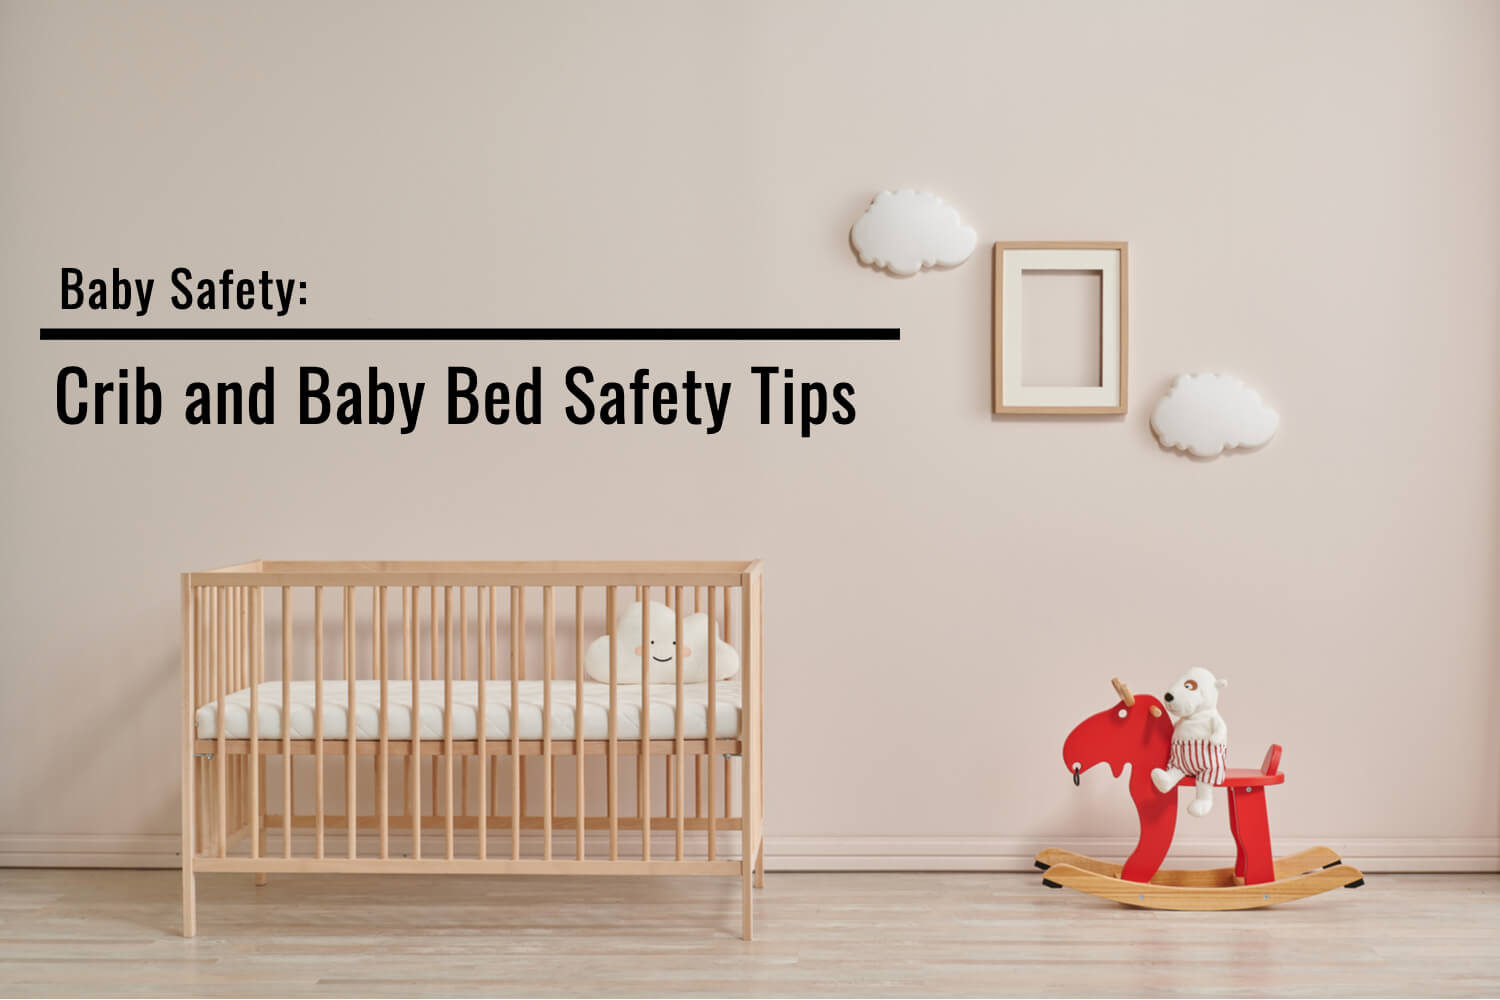 Baby Safety- Crib and Baby Bed Safety Tips